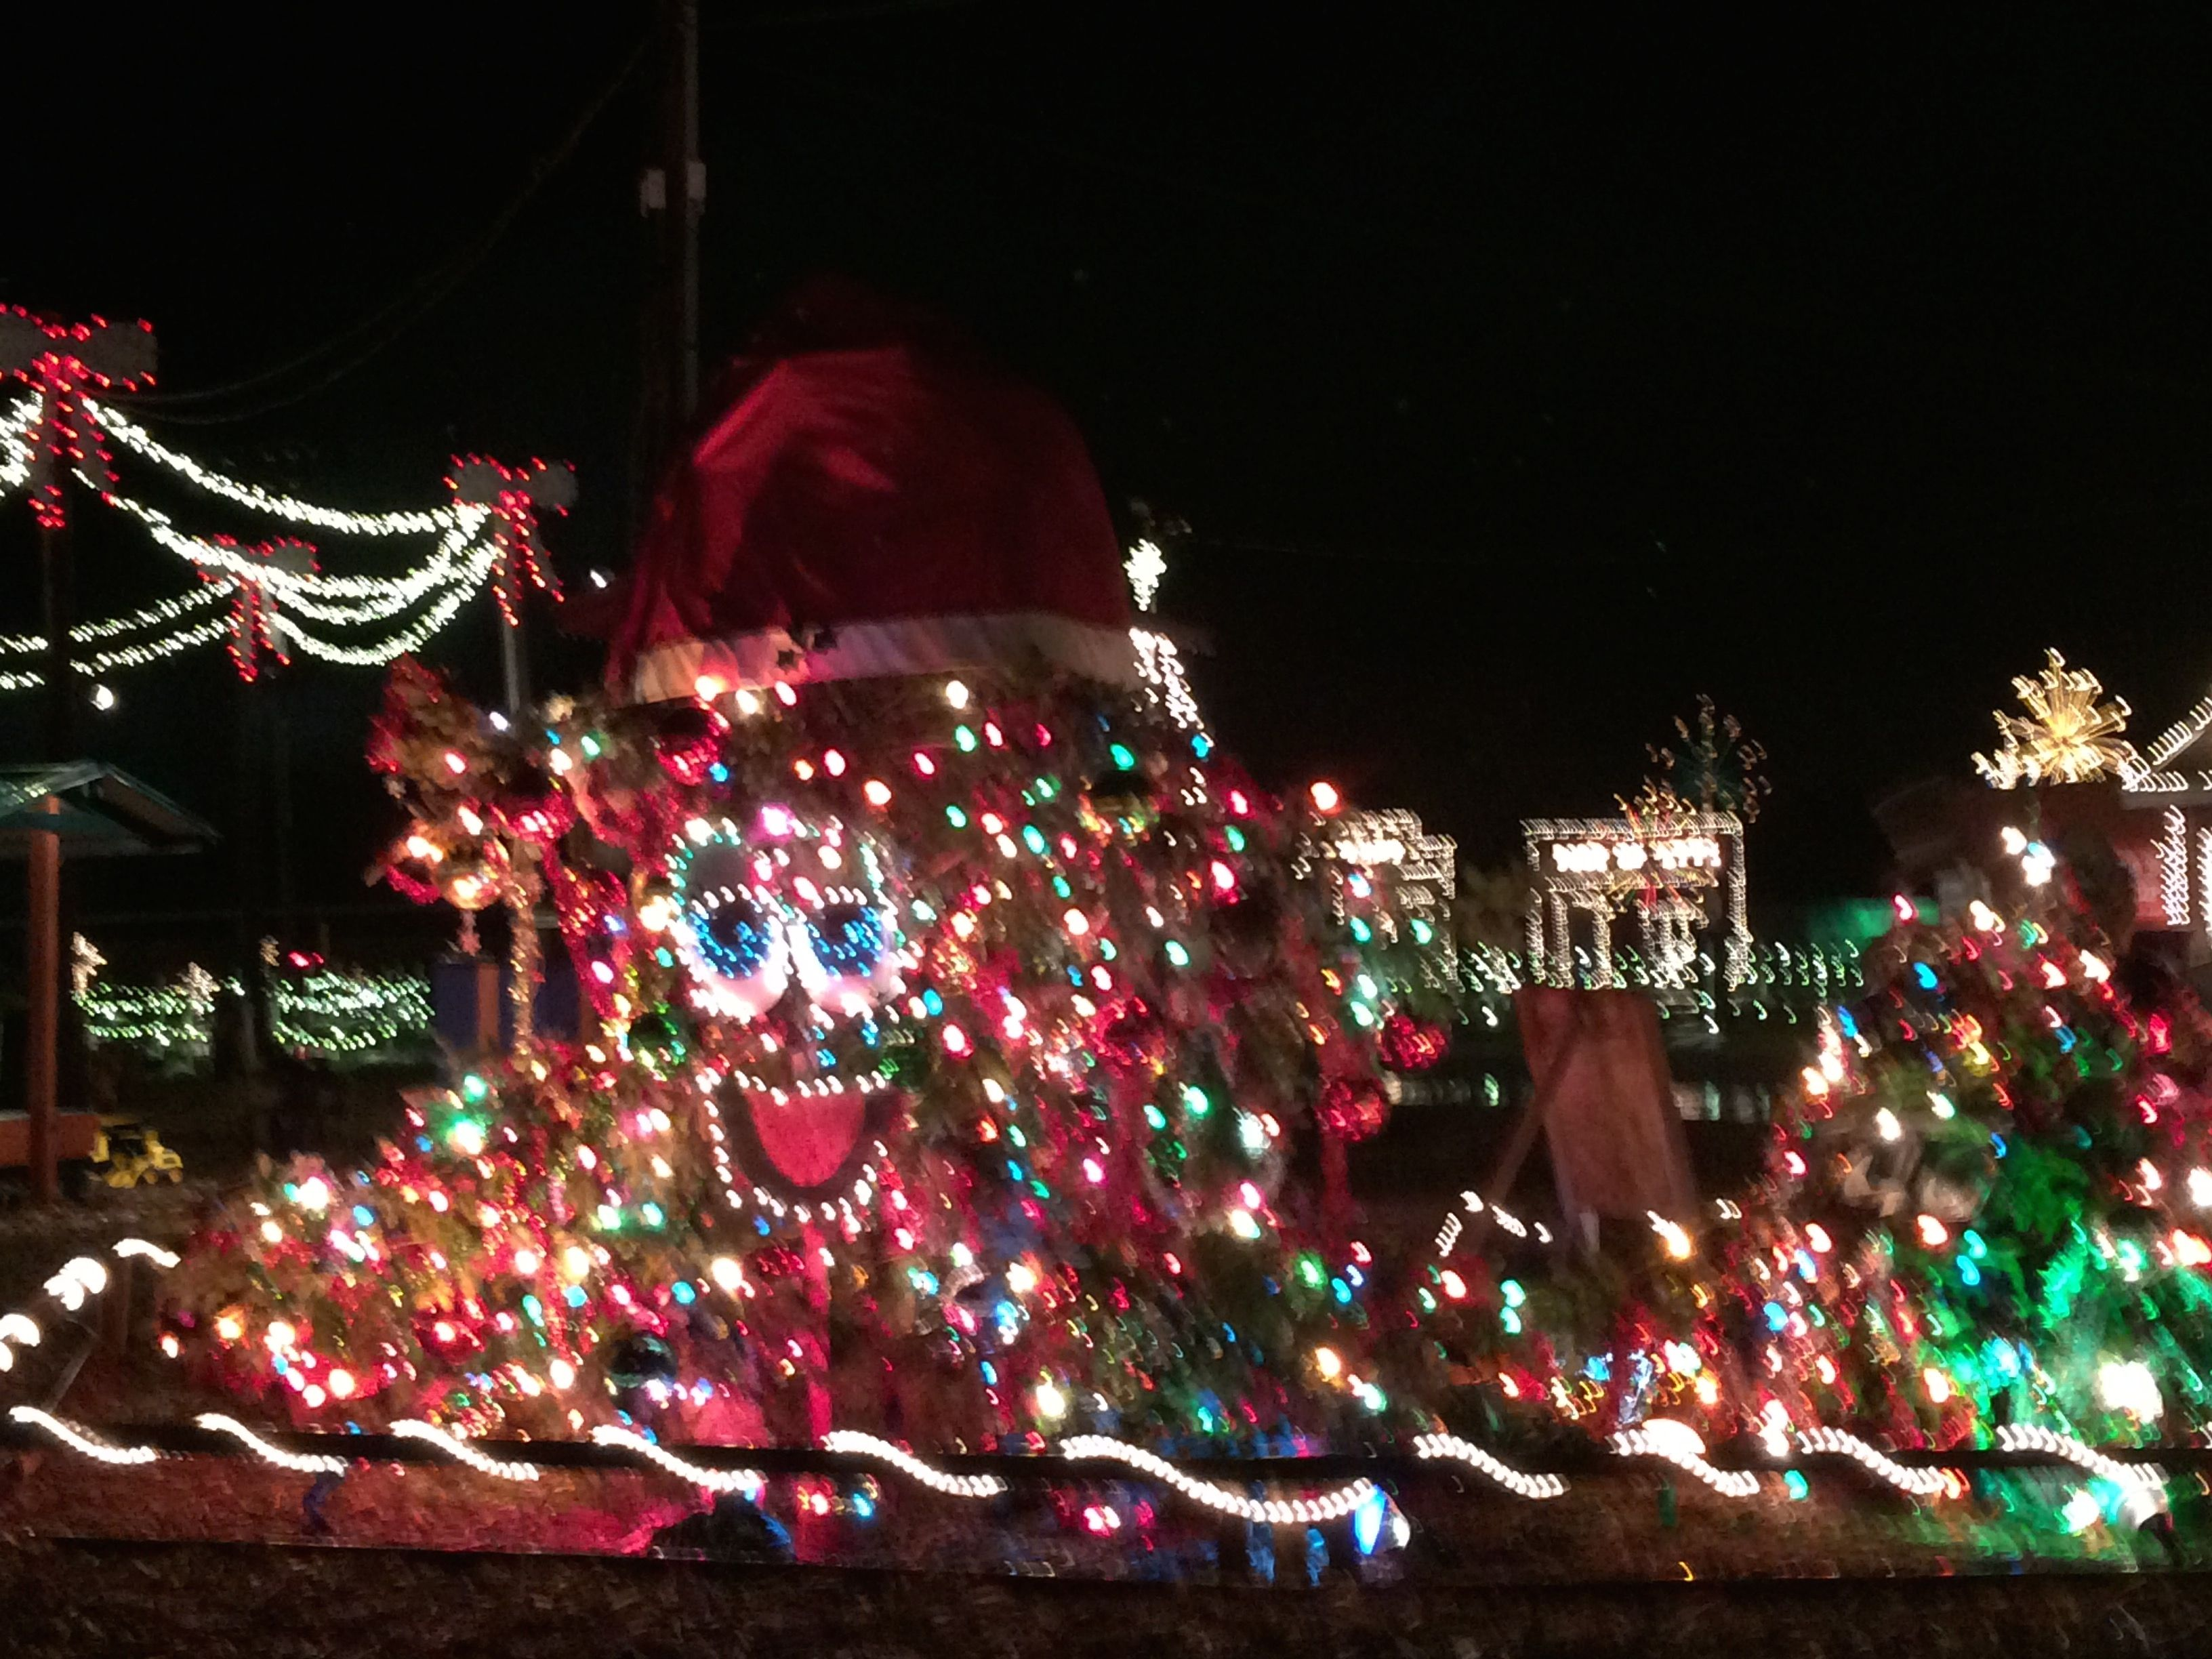 Overlys Christmas Lights.It S Henny Hemlock The Talking Christmas Tree At Overly S